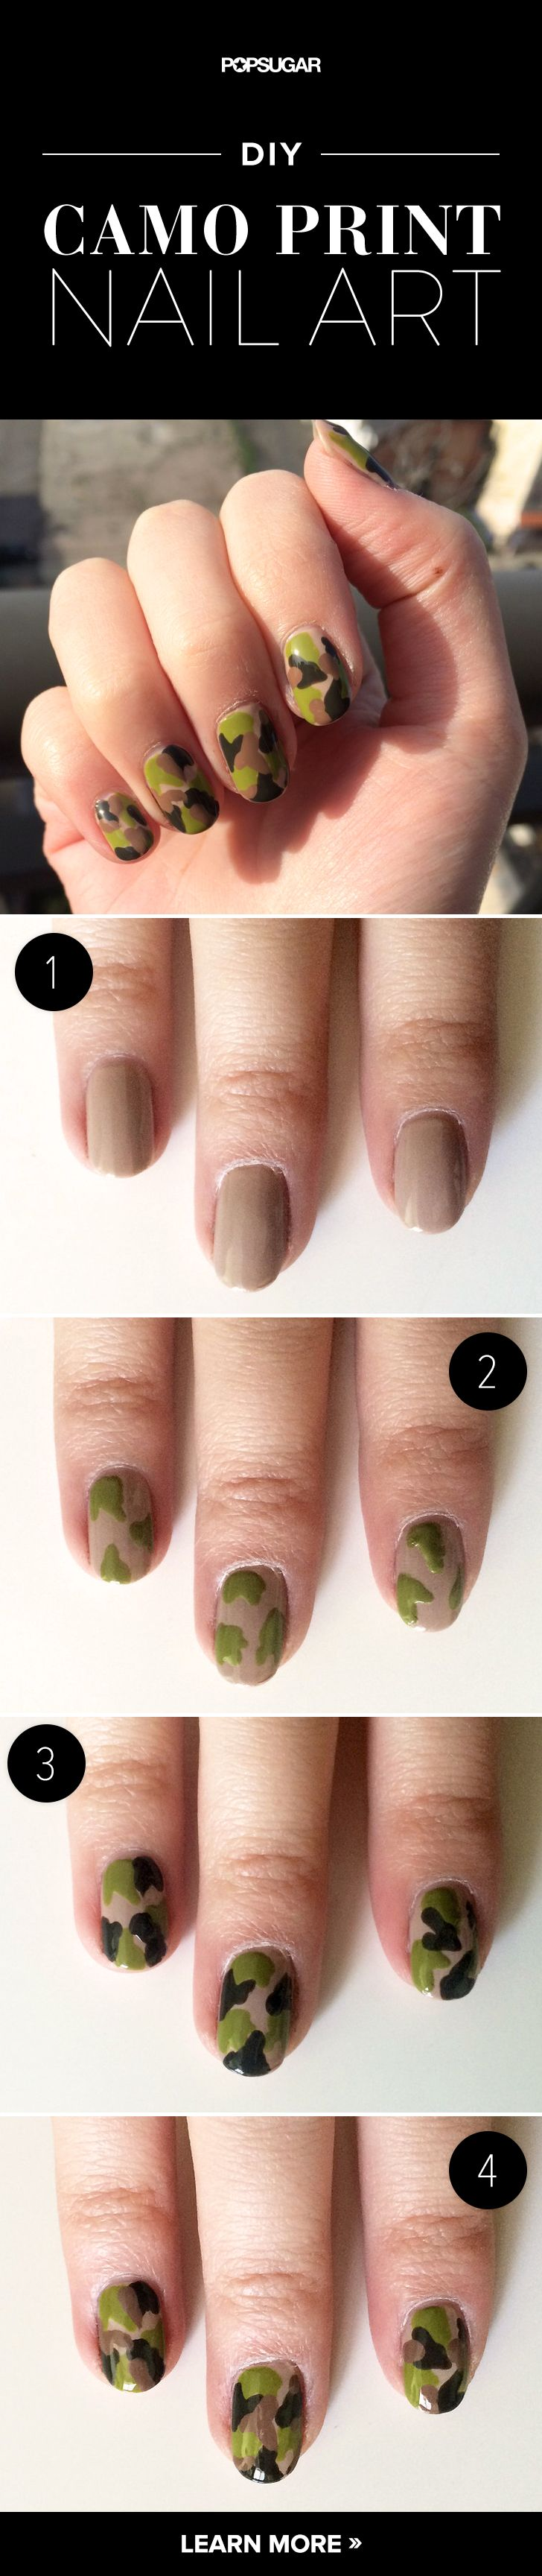 Even if you're not so skilled at nail art, we promise you can nail this cool, goes-with-everything design.